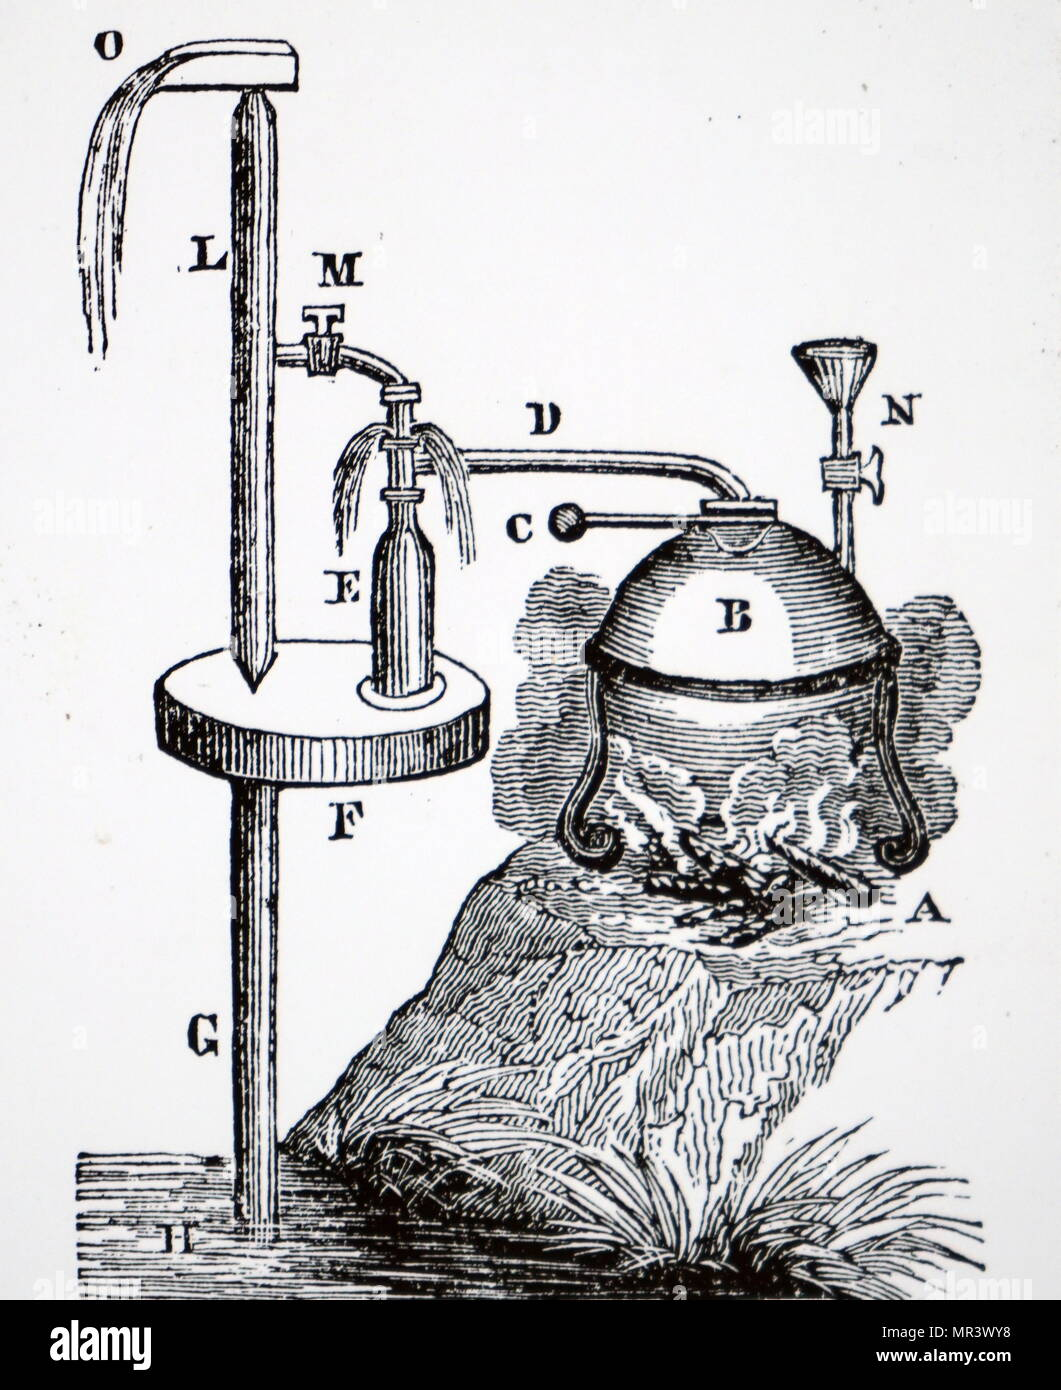 illustration depicting a small steam engine with one receiver used for raising water dated 19th century MR3WY8 illustration depicting a small steam engine with one receiver used